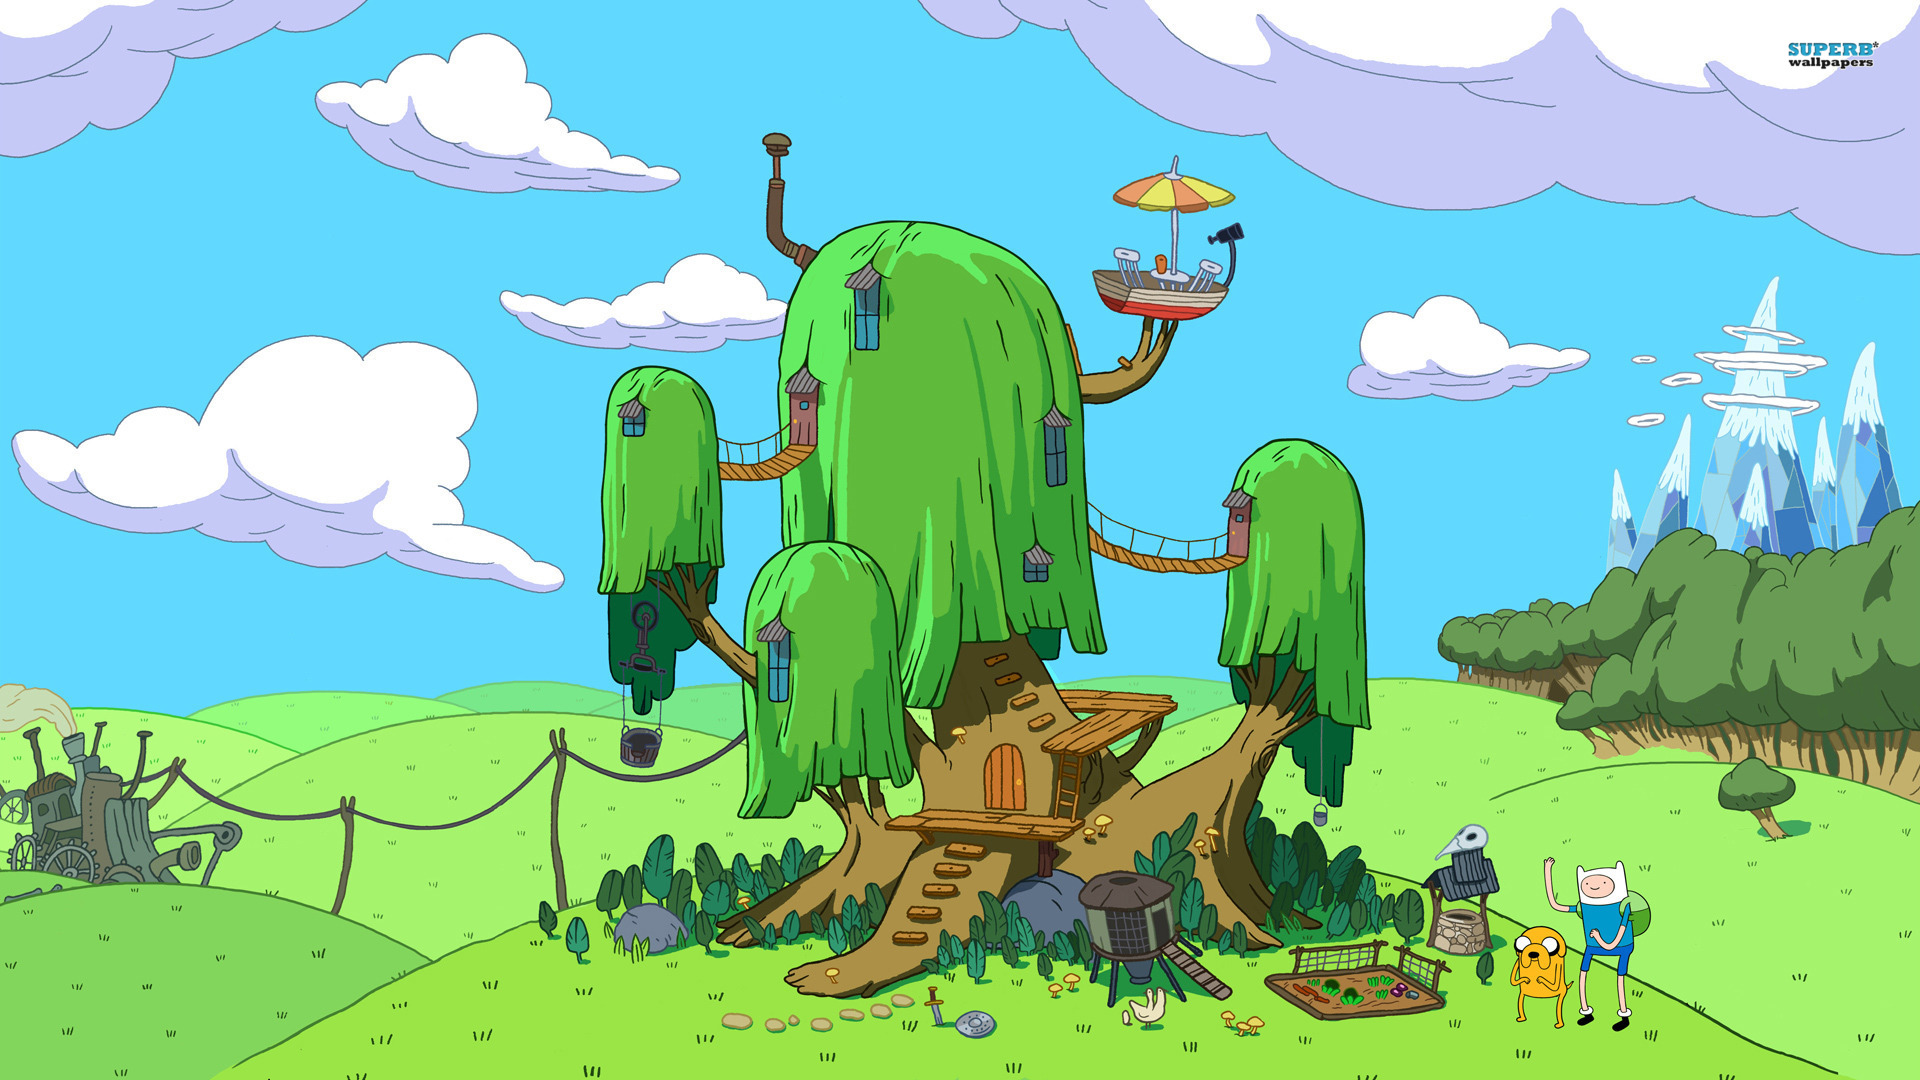 Adventure Time Wallpaper, PC 43 Adventure Time Photos, NMgnCP com